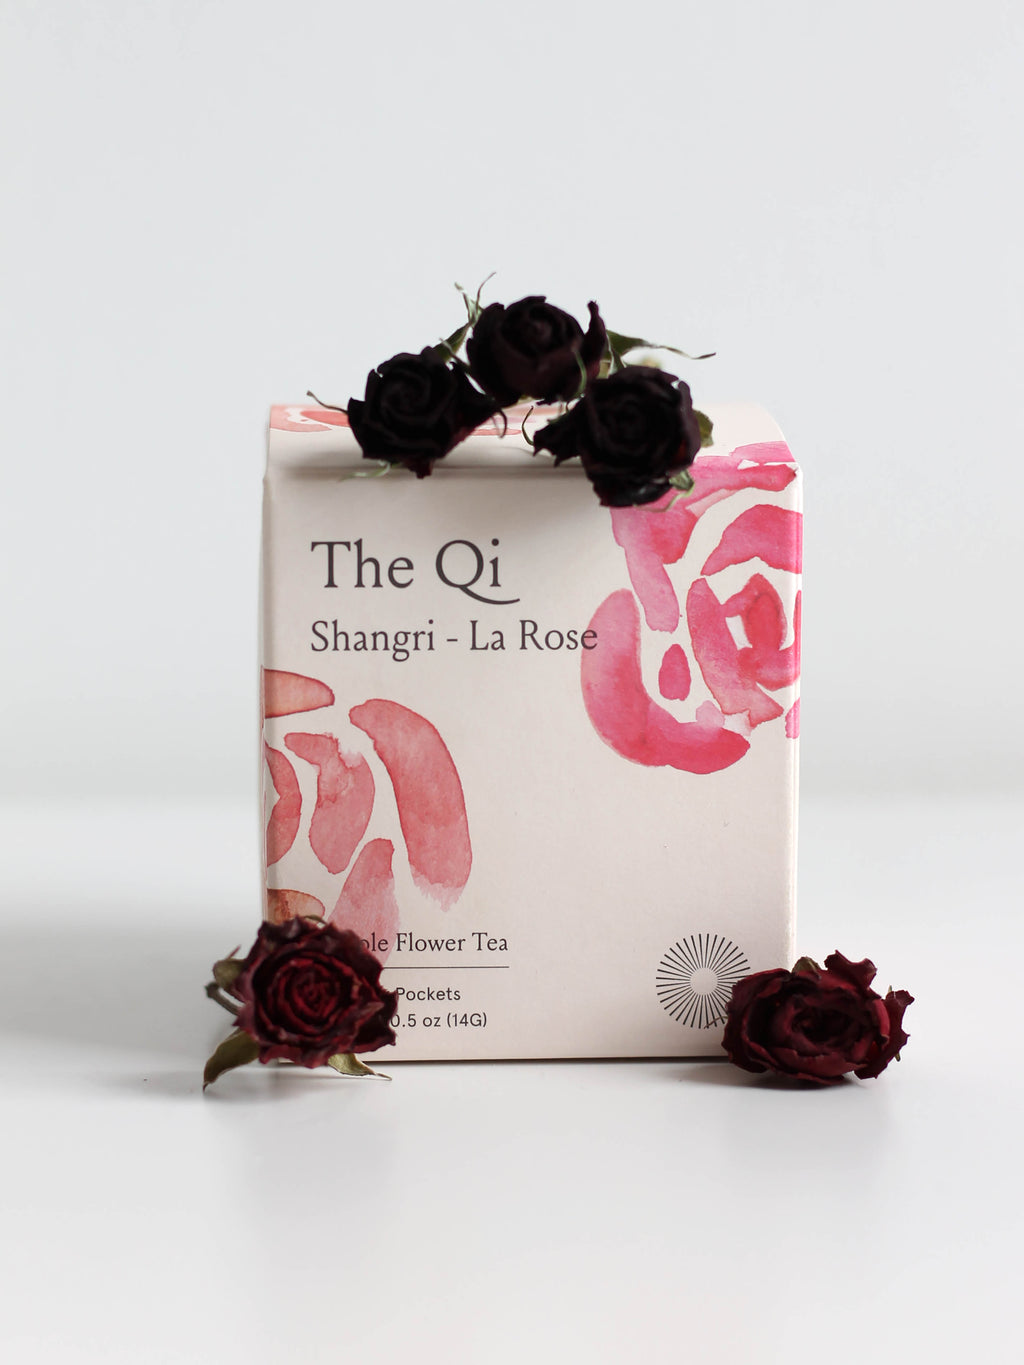 THE QI SHANGRI-LA ROSE TEA